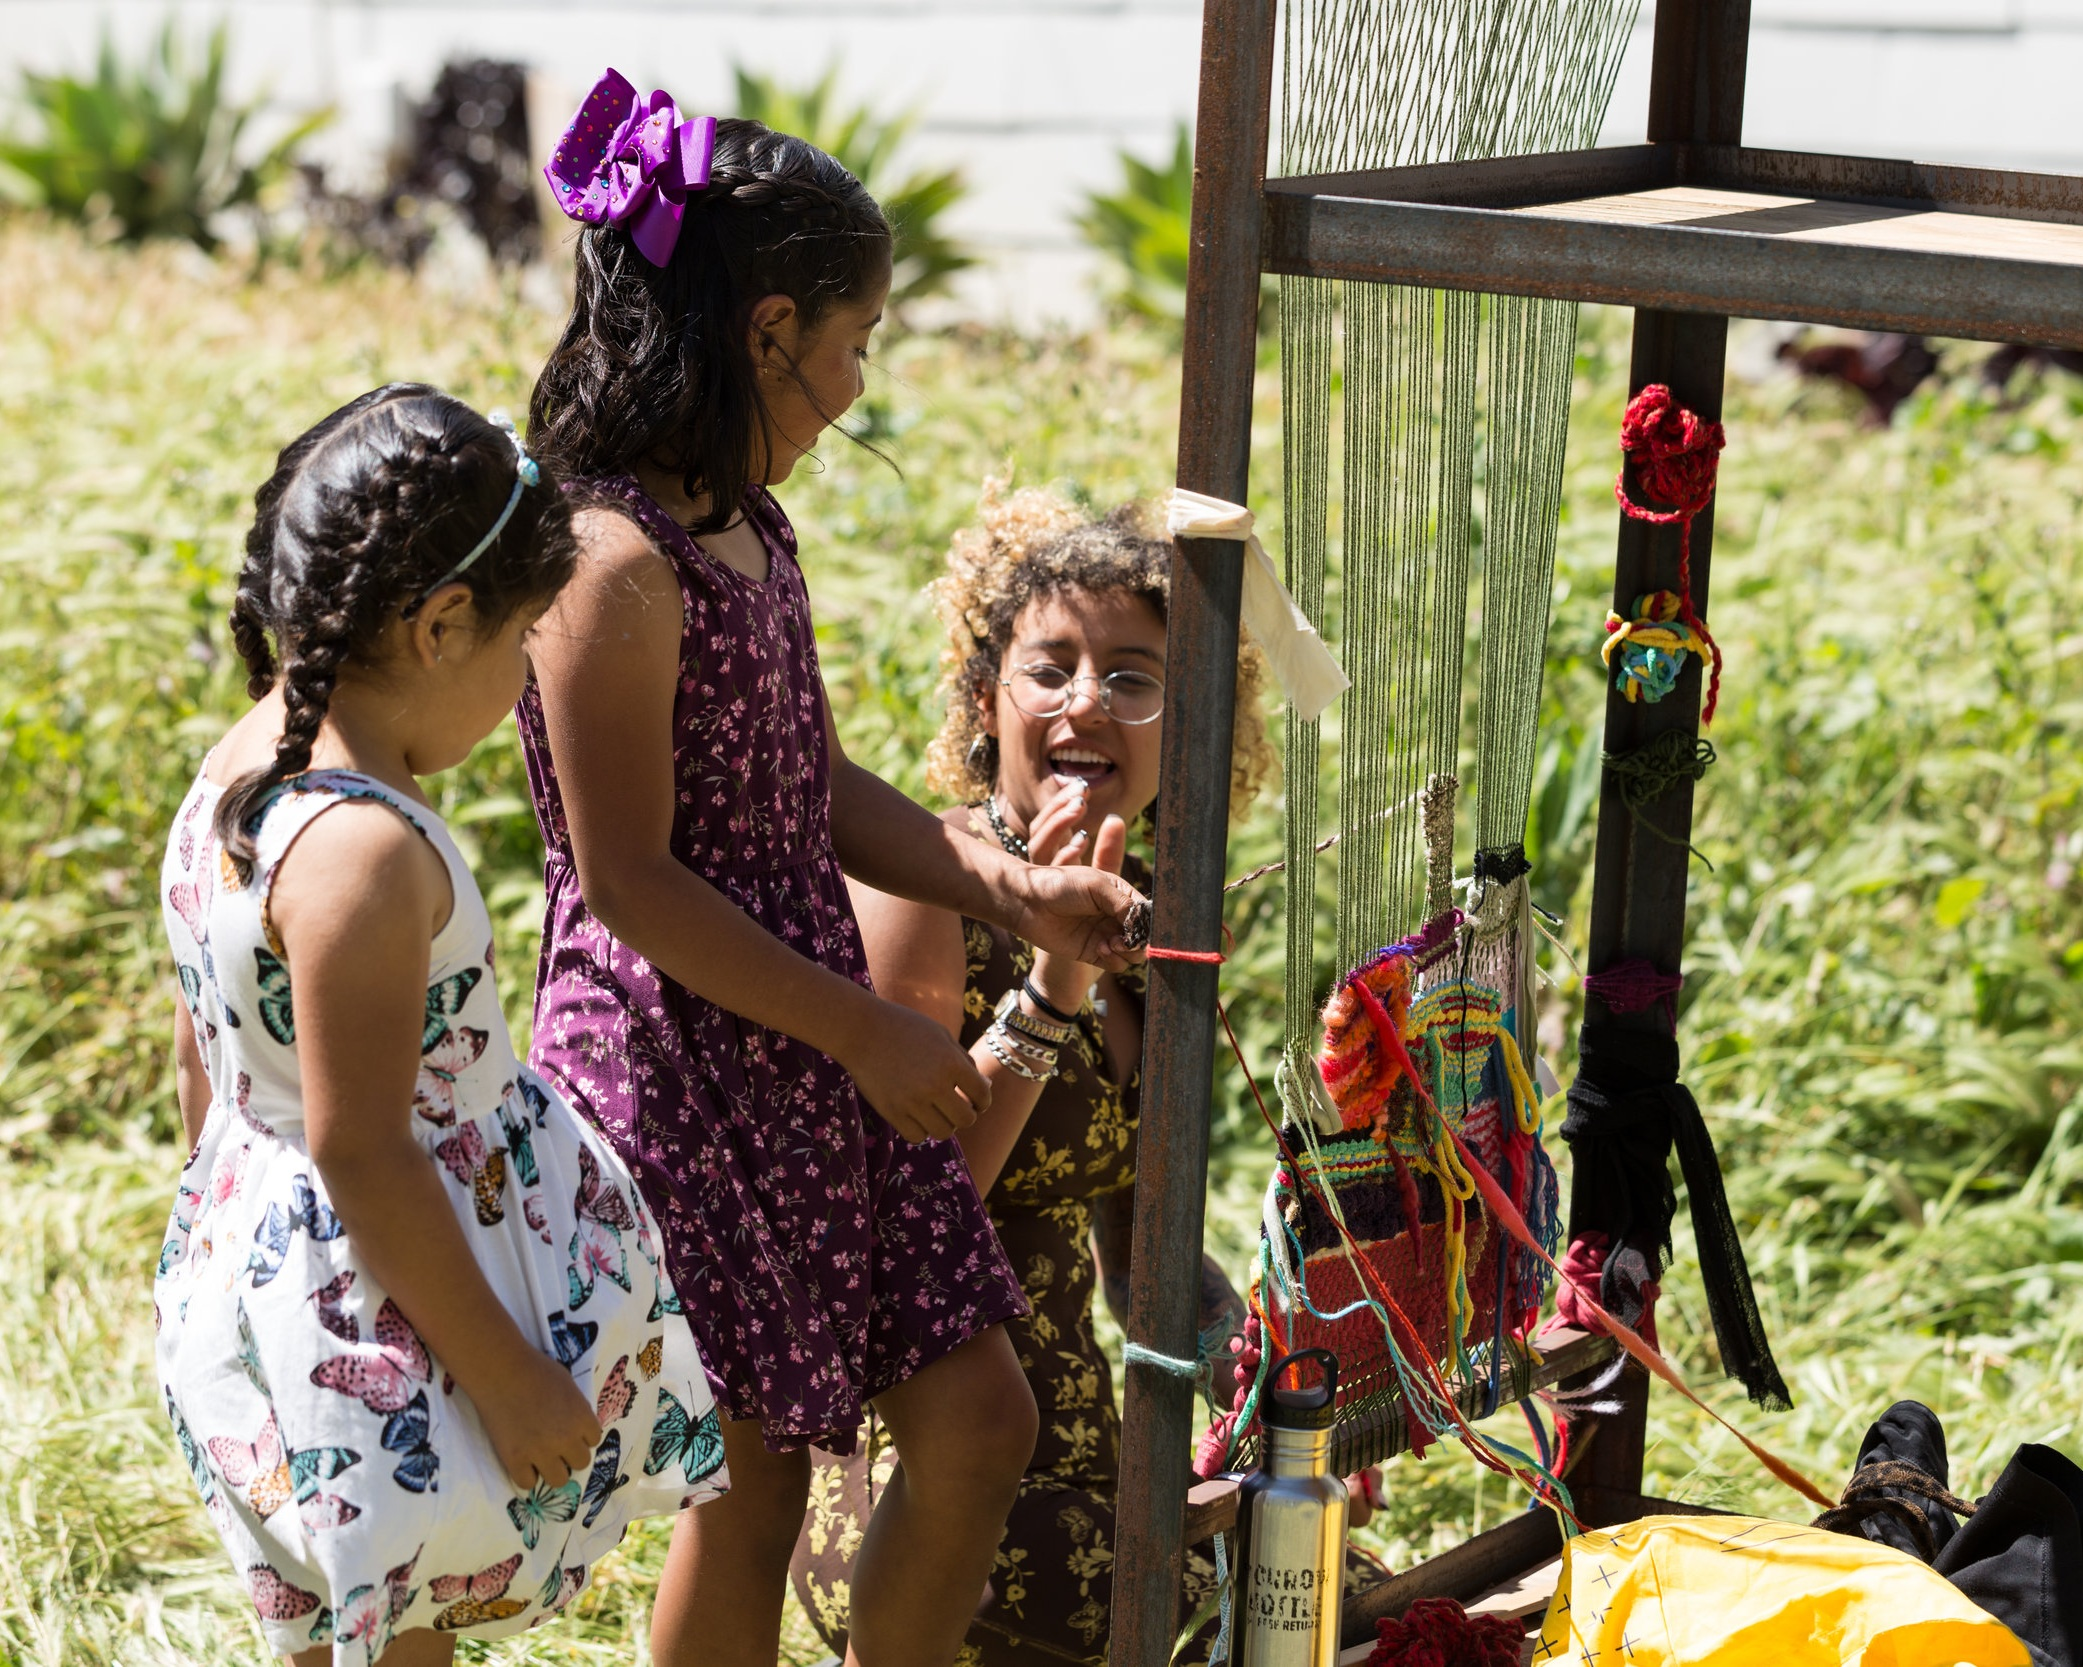 children interactive with loom installation at opening for  Ganas de Existir!  in San Pedro, CA 2019